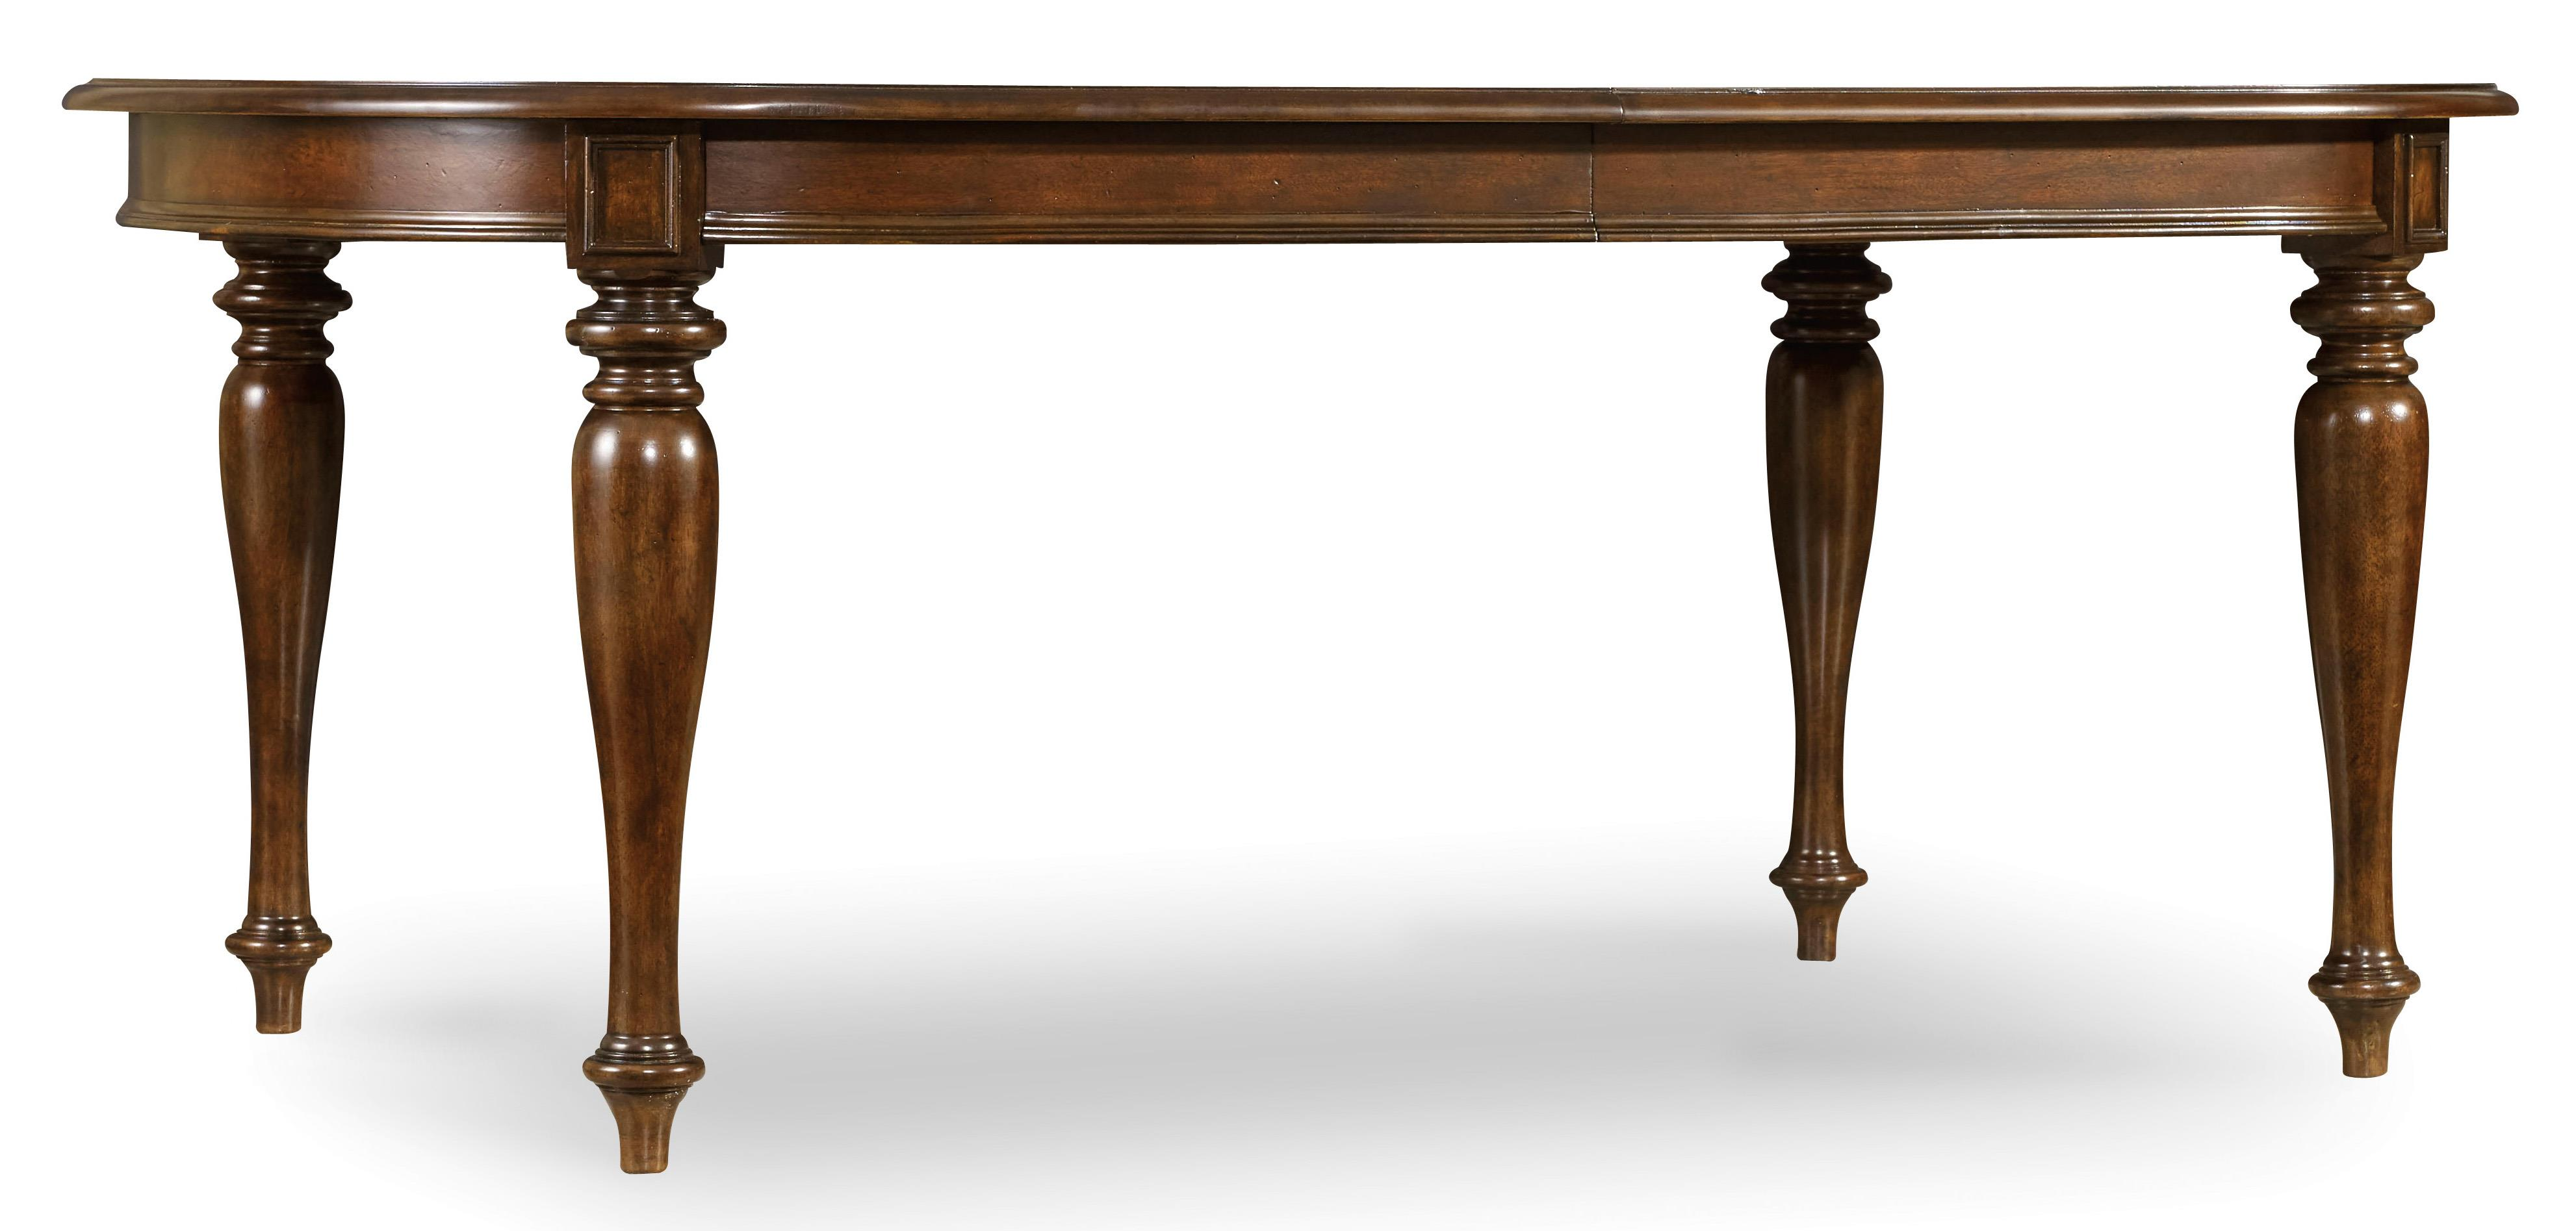 Hooker Furniture Leesburg Leg Table with One 18'' Leaf - Item Number: 5381-75200